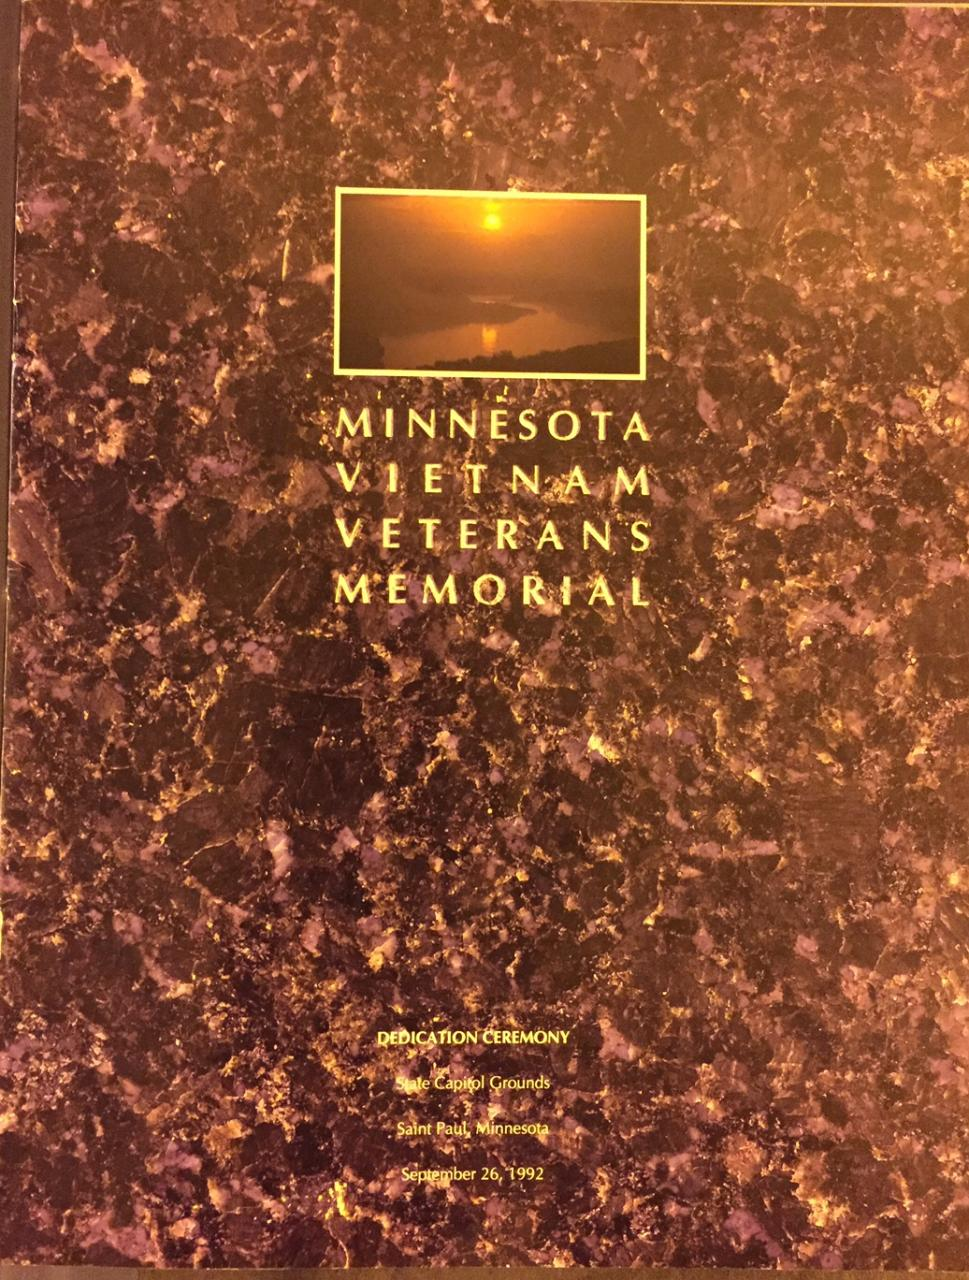 MN Vietnam Veterans Memorial program